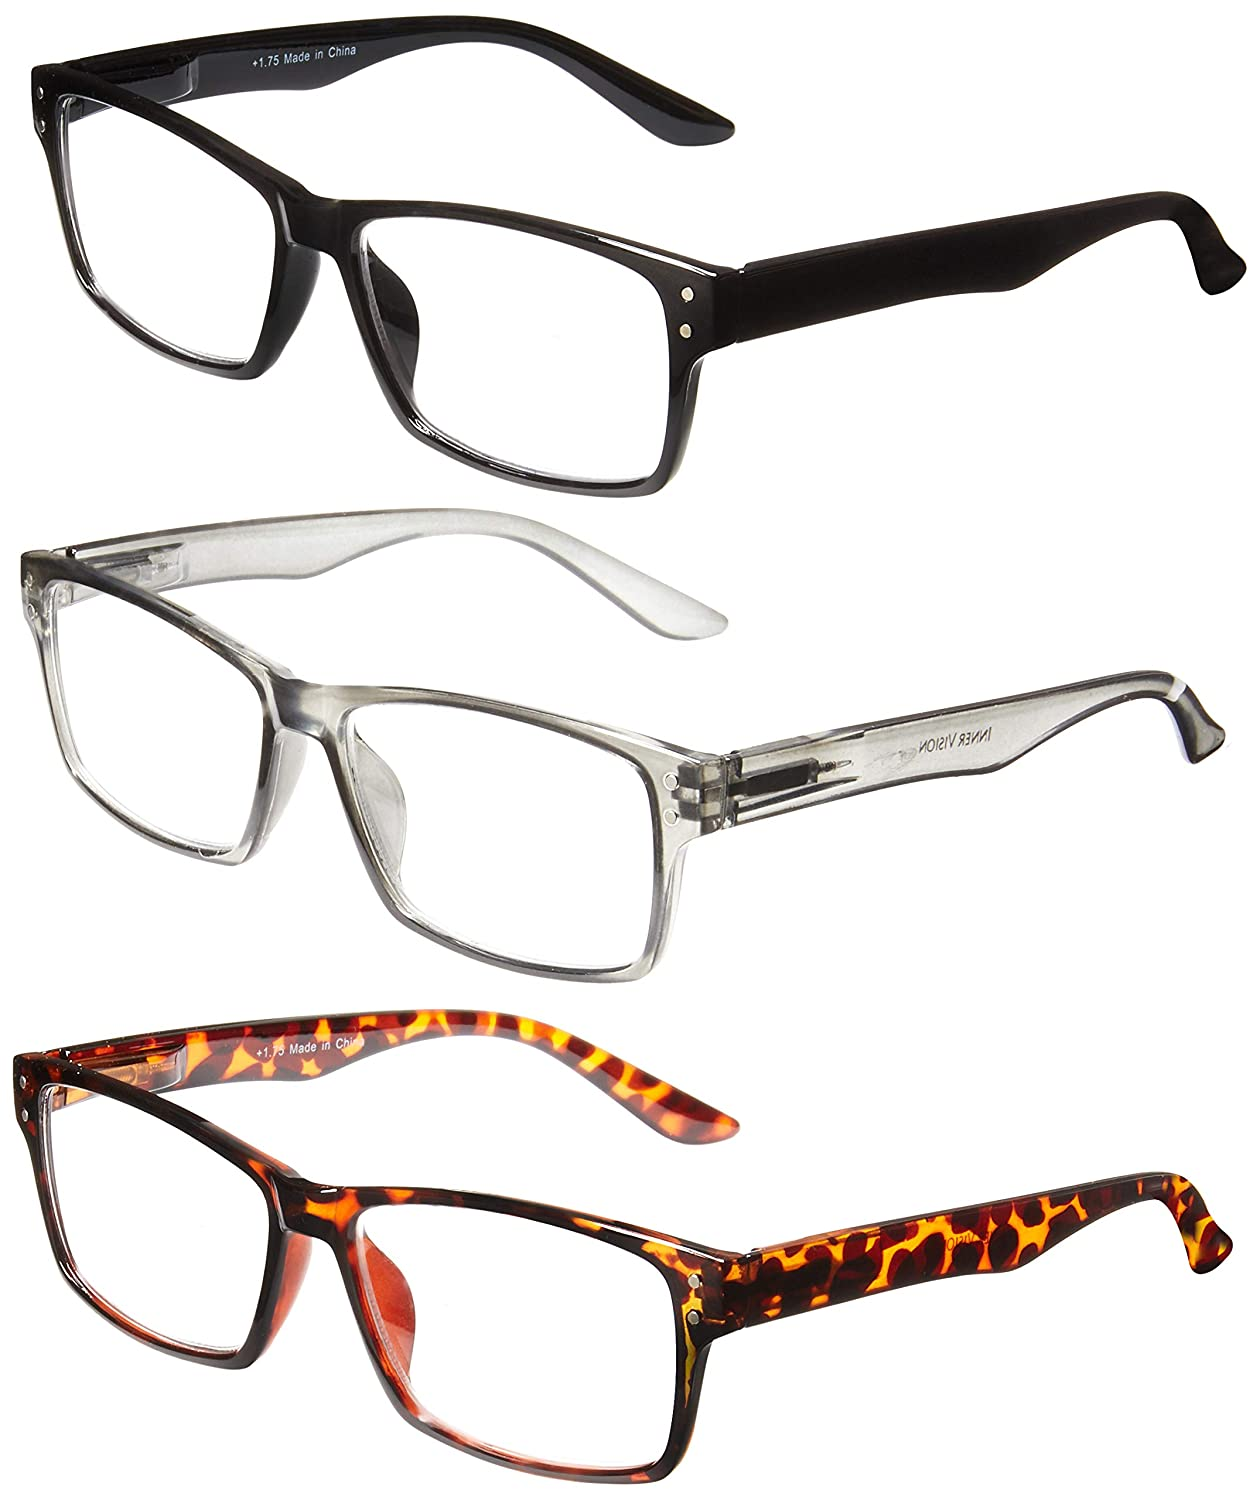 db1dad10cfef Amazon.com: Inner Vision 3-Pack Reading Glasses Set w/Spring Hinges for Men  & Women - (1.75 x Magnification) - 3 Clear Lens Readers (Neutral Color  Variety): ...